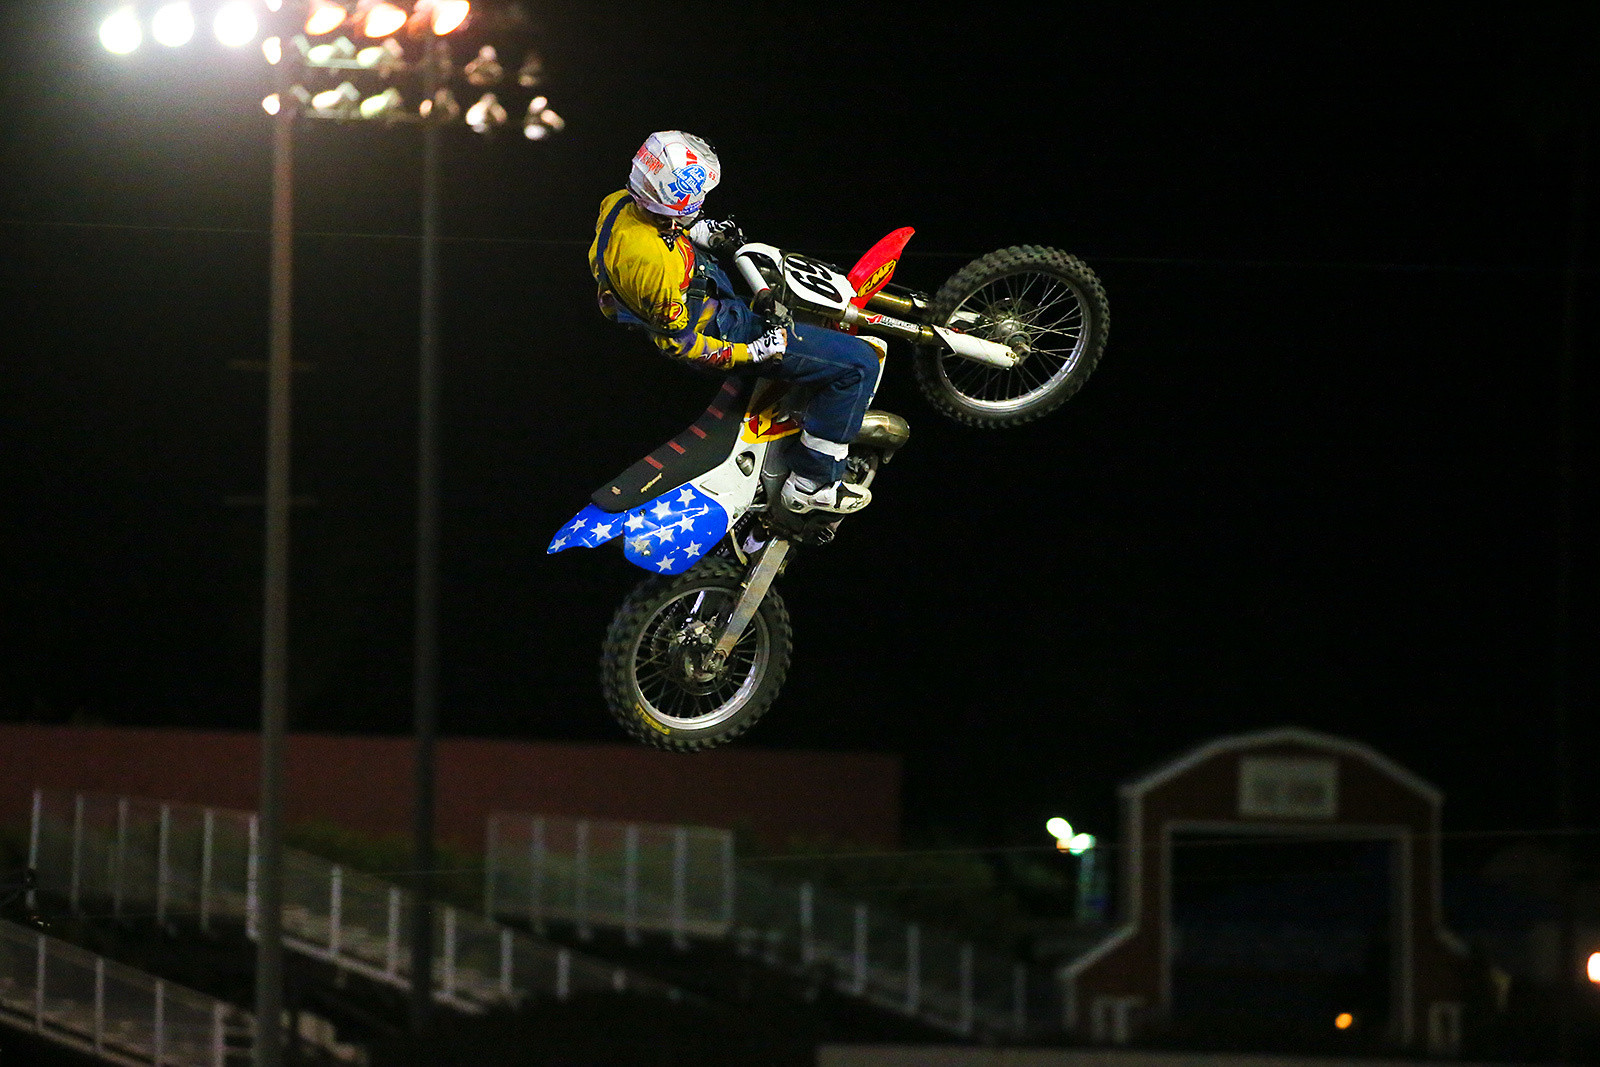 Ronnie Mac - Photo Blast: Red Bull Straight Rhythm - Motocross Pictures - Vital MX